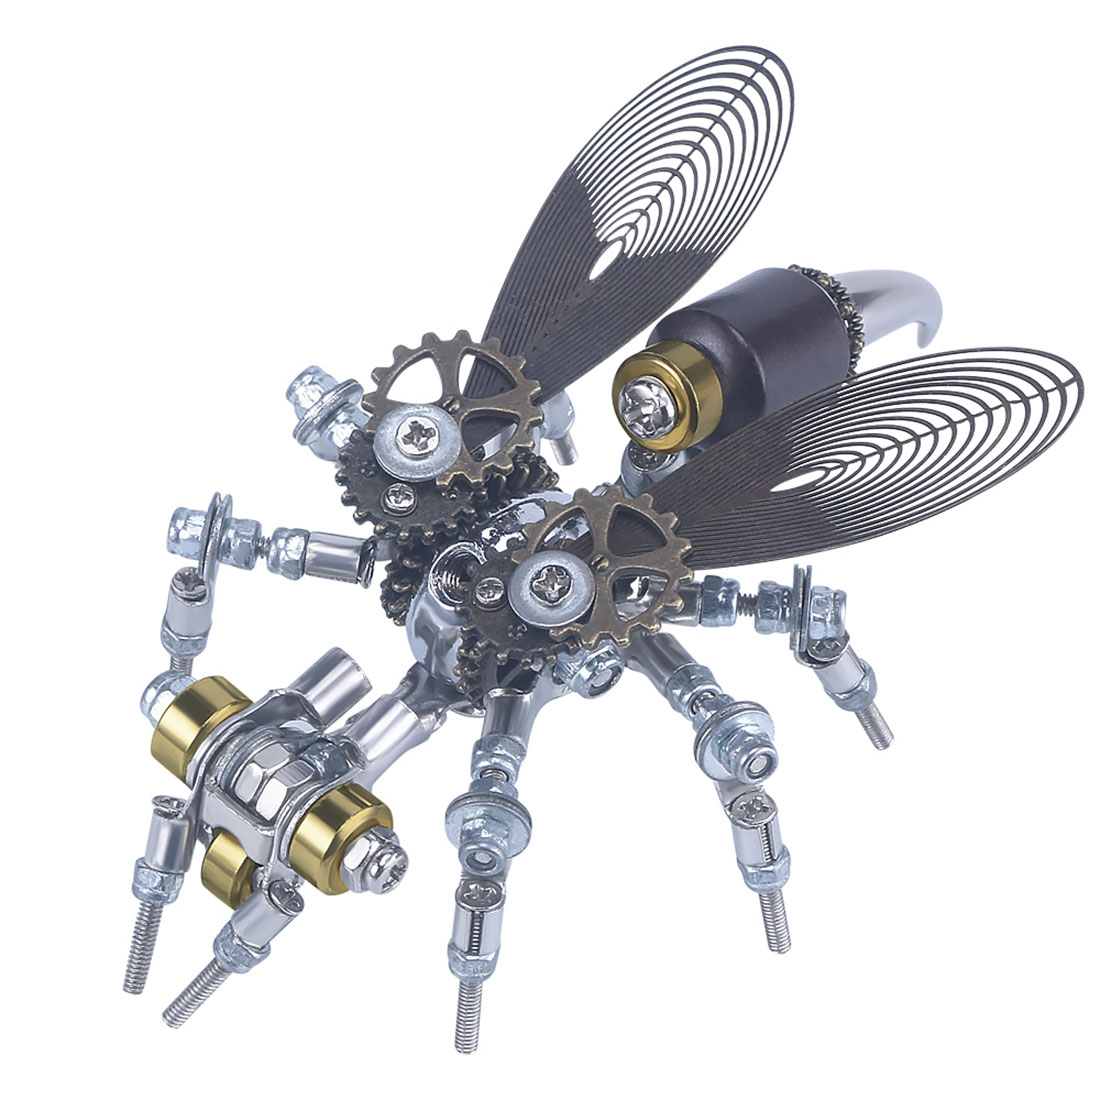 126Pcs Mechanical Wasp 3D Puzzle DIY Metal Insect Model Kit